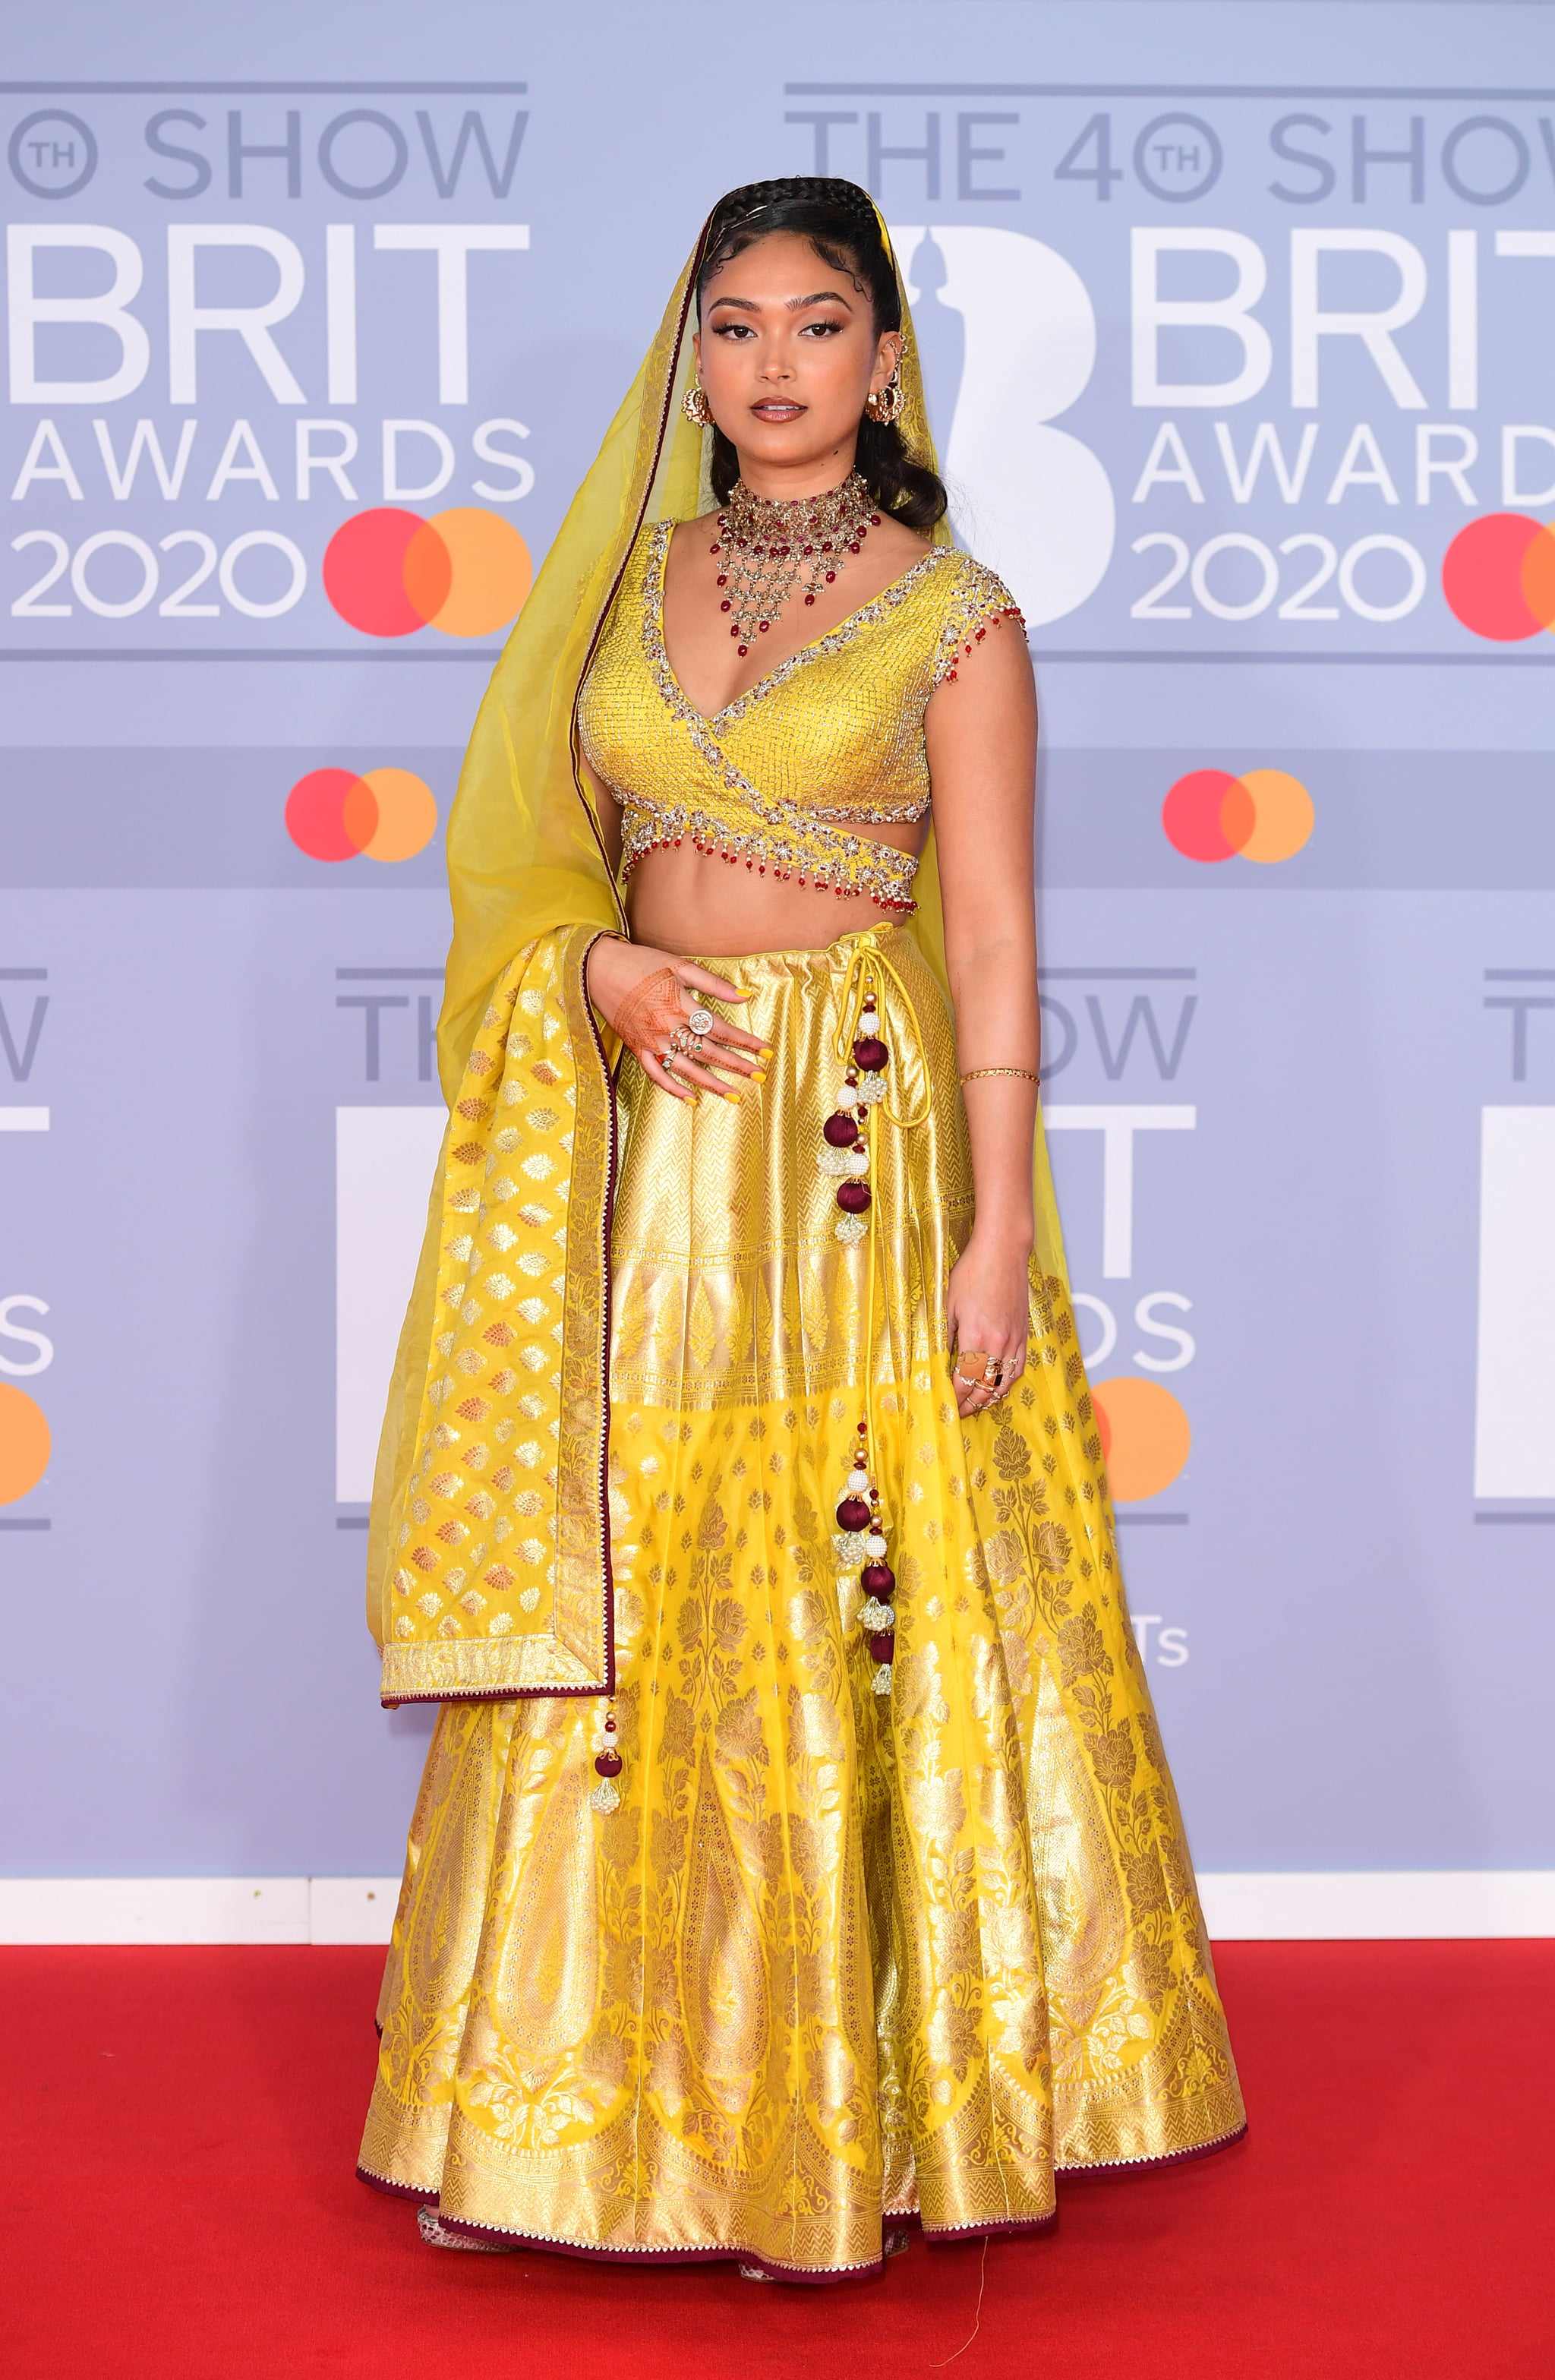 Joy Crookes arriving at the Brit Awards 2020 held at the O2 Arena, London. (Photo by Ian West/PA Images via Getty Images)